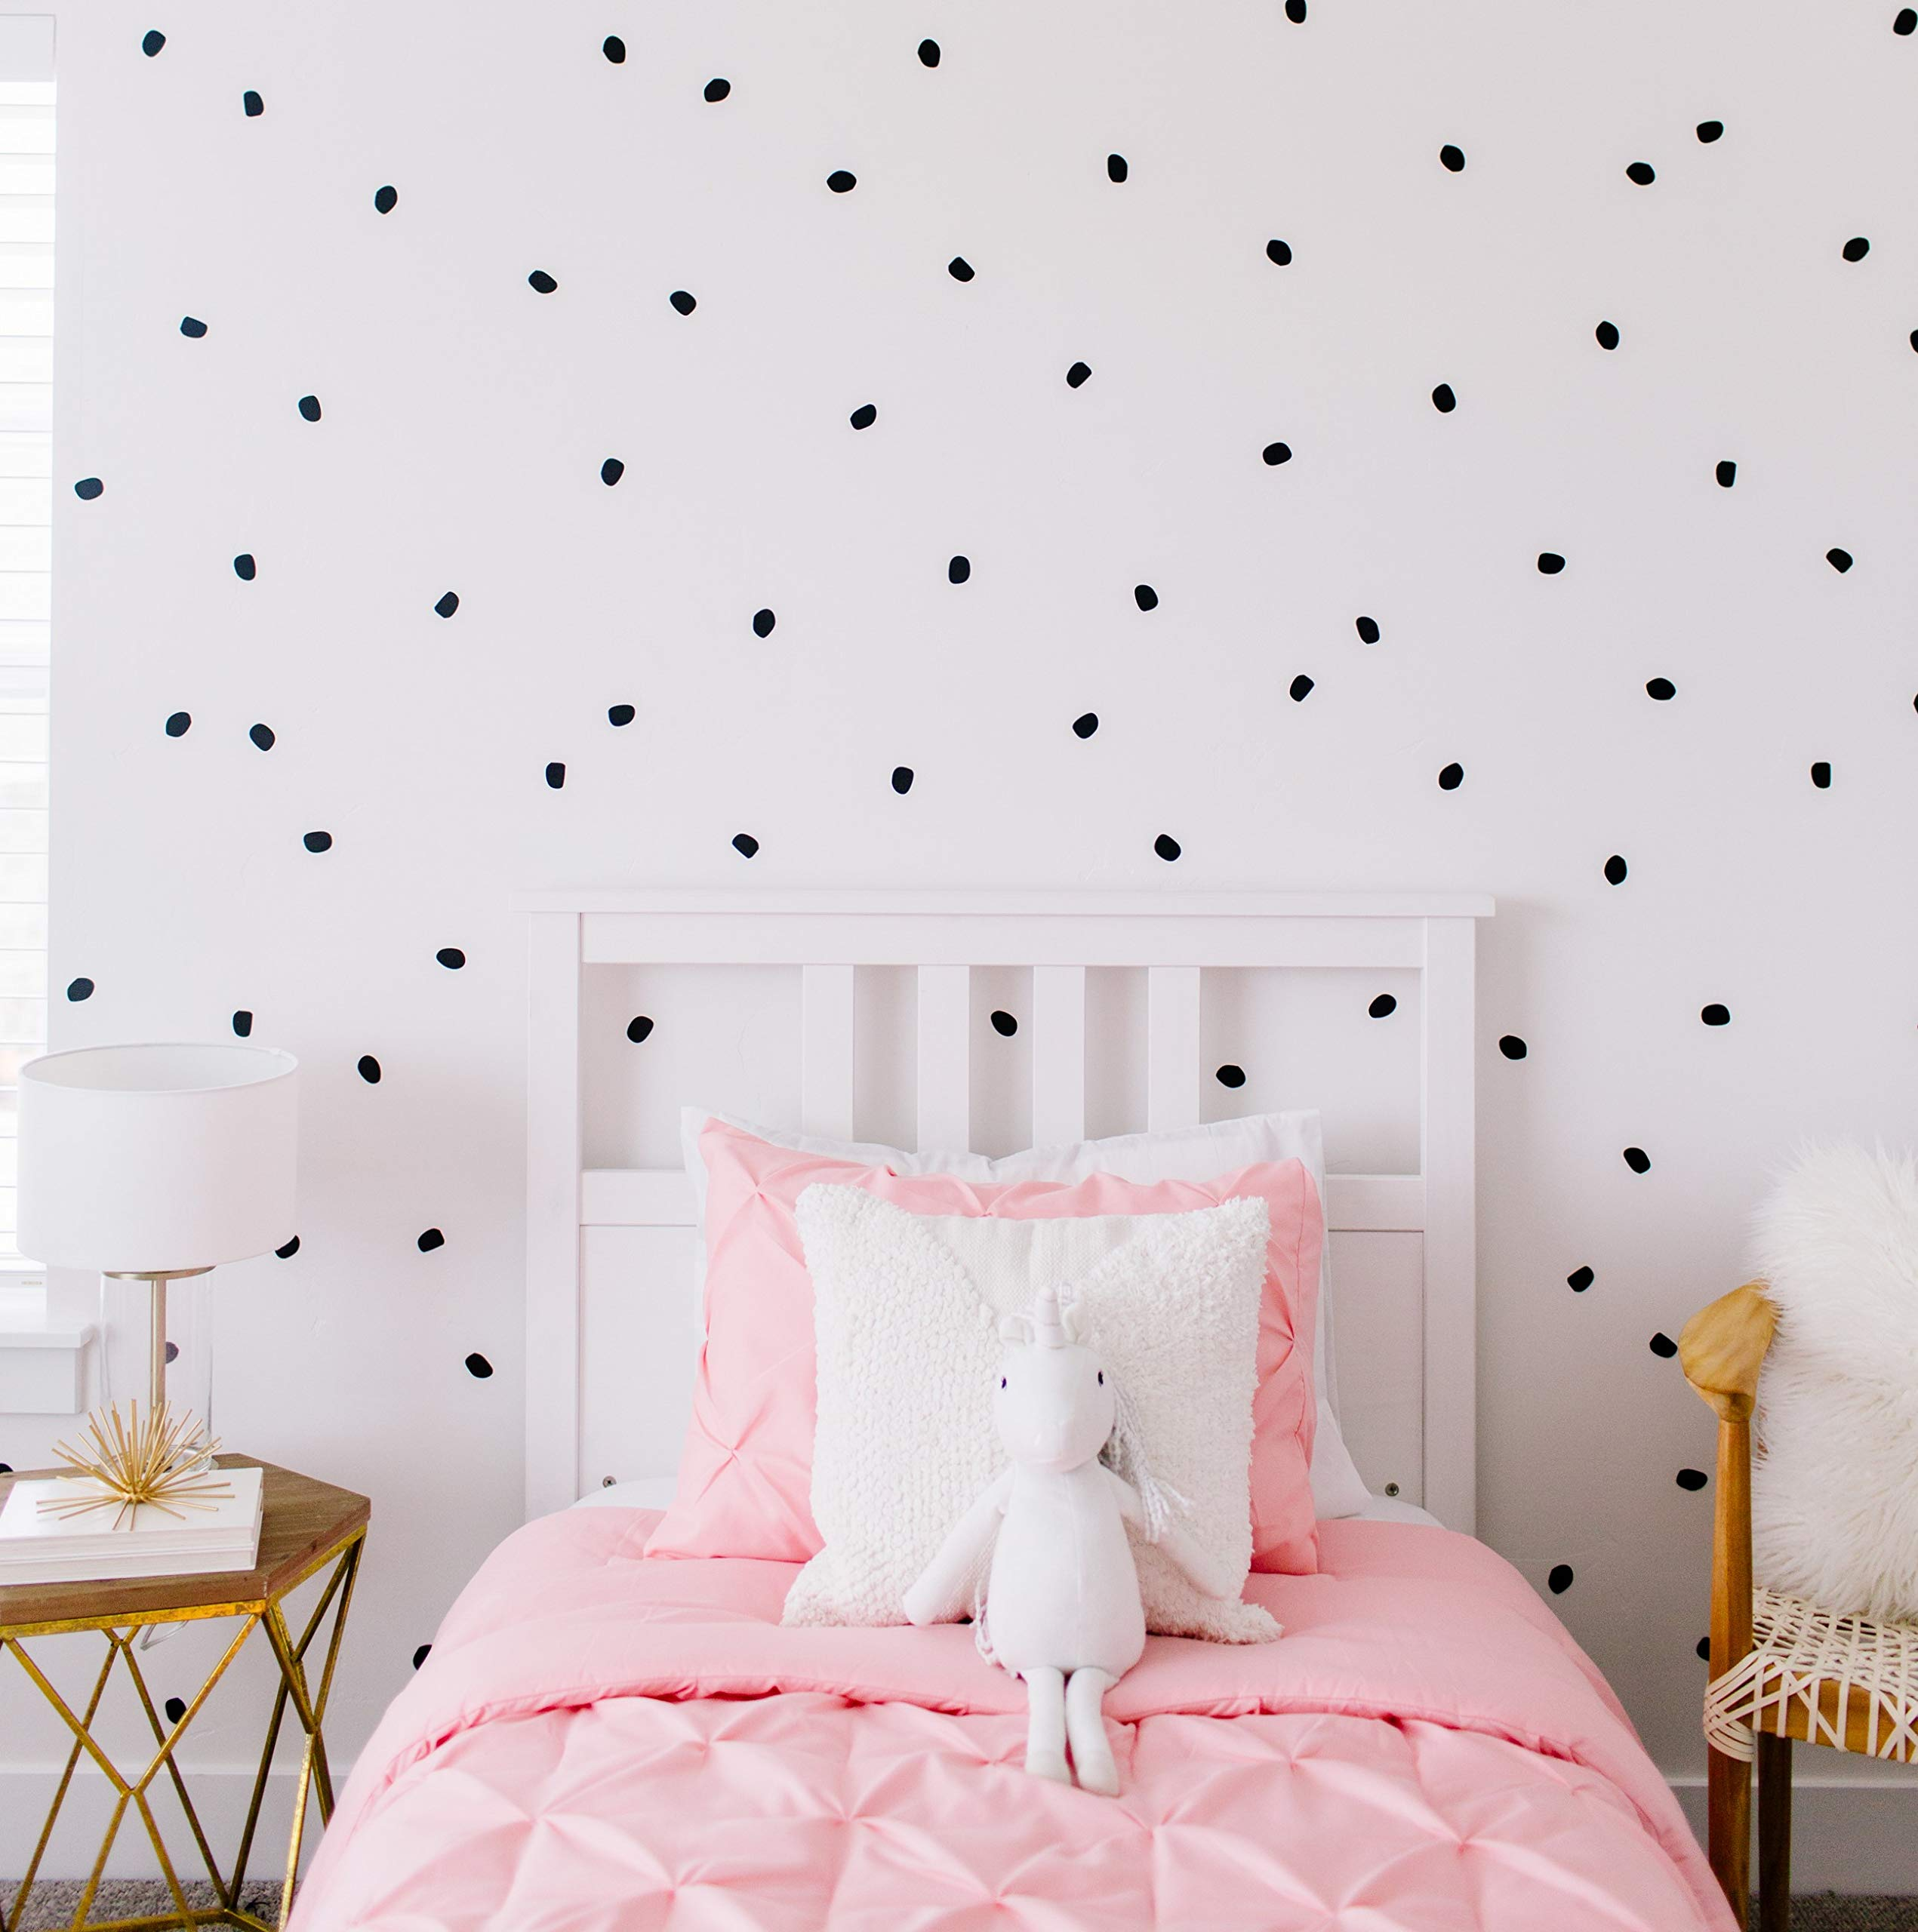 Modern Maxwell Wall Art Decals for Girls Boys Nursery, Bedroom, Living Room ''London'' Black Dot Room Sticker 168 Pieces by Modern Maxwell